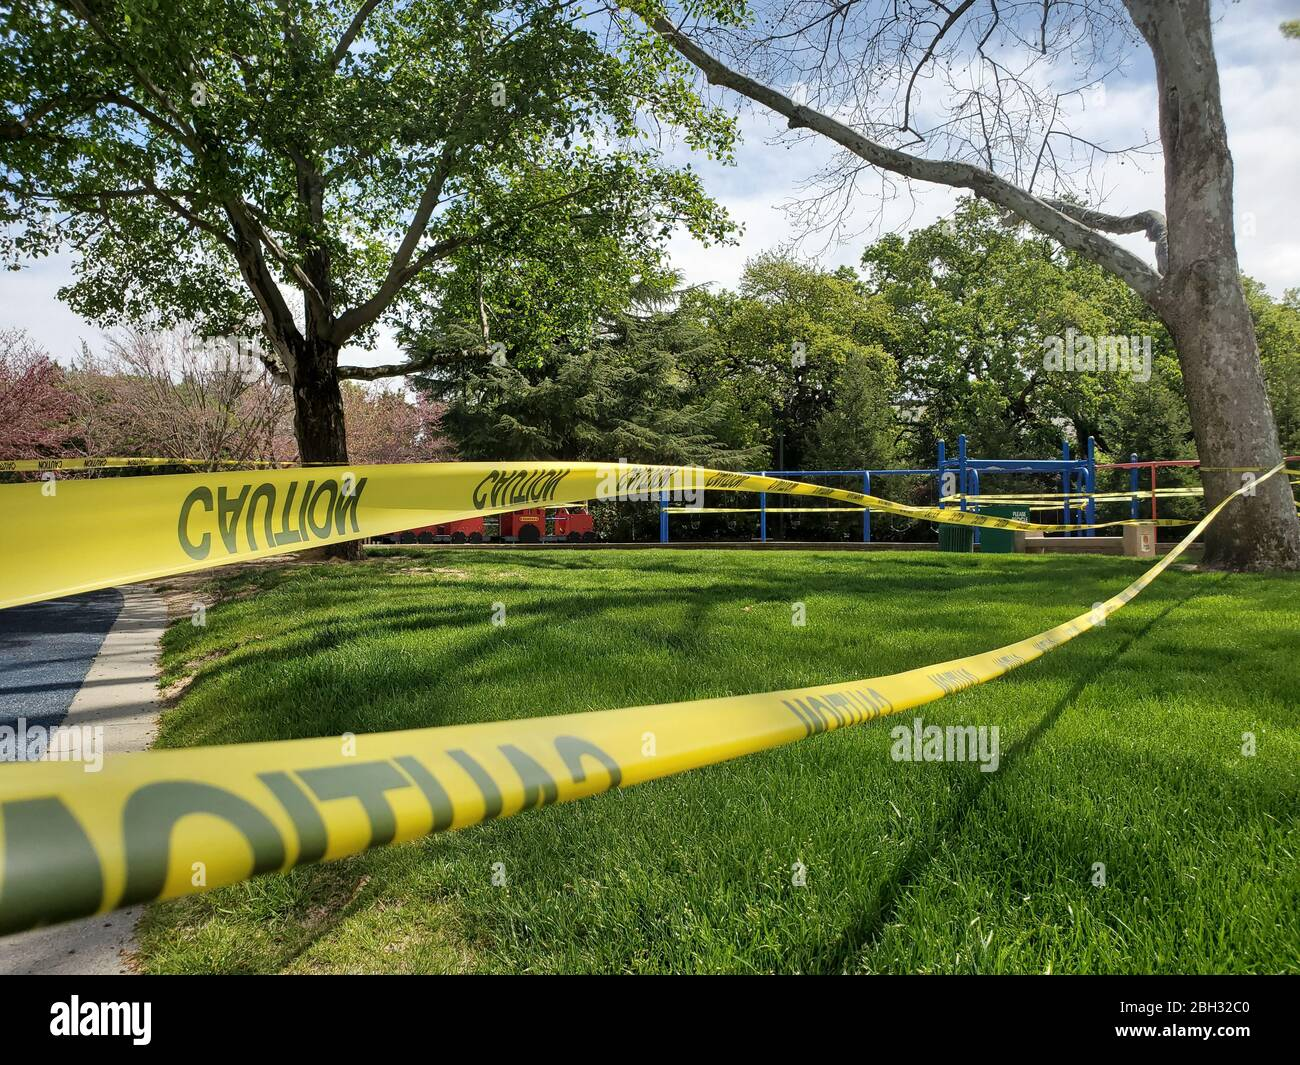 Caution tape and signs are visible at a closed playground during an outbreak of COVID-19 coronavirus in Walnut Creek, California, April 8, 2020. () Stock Photo